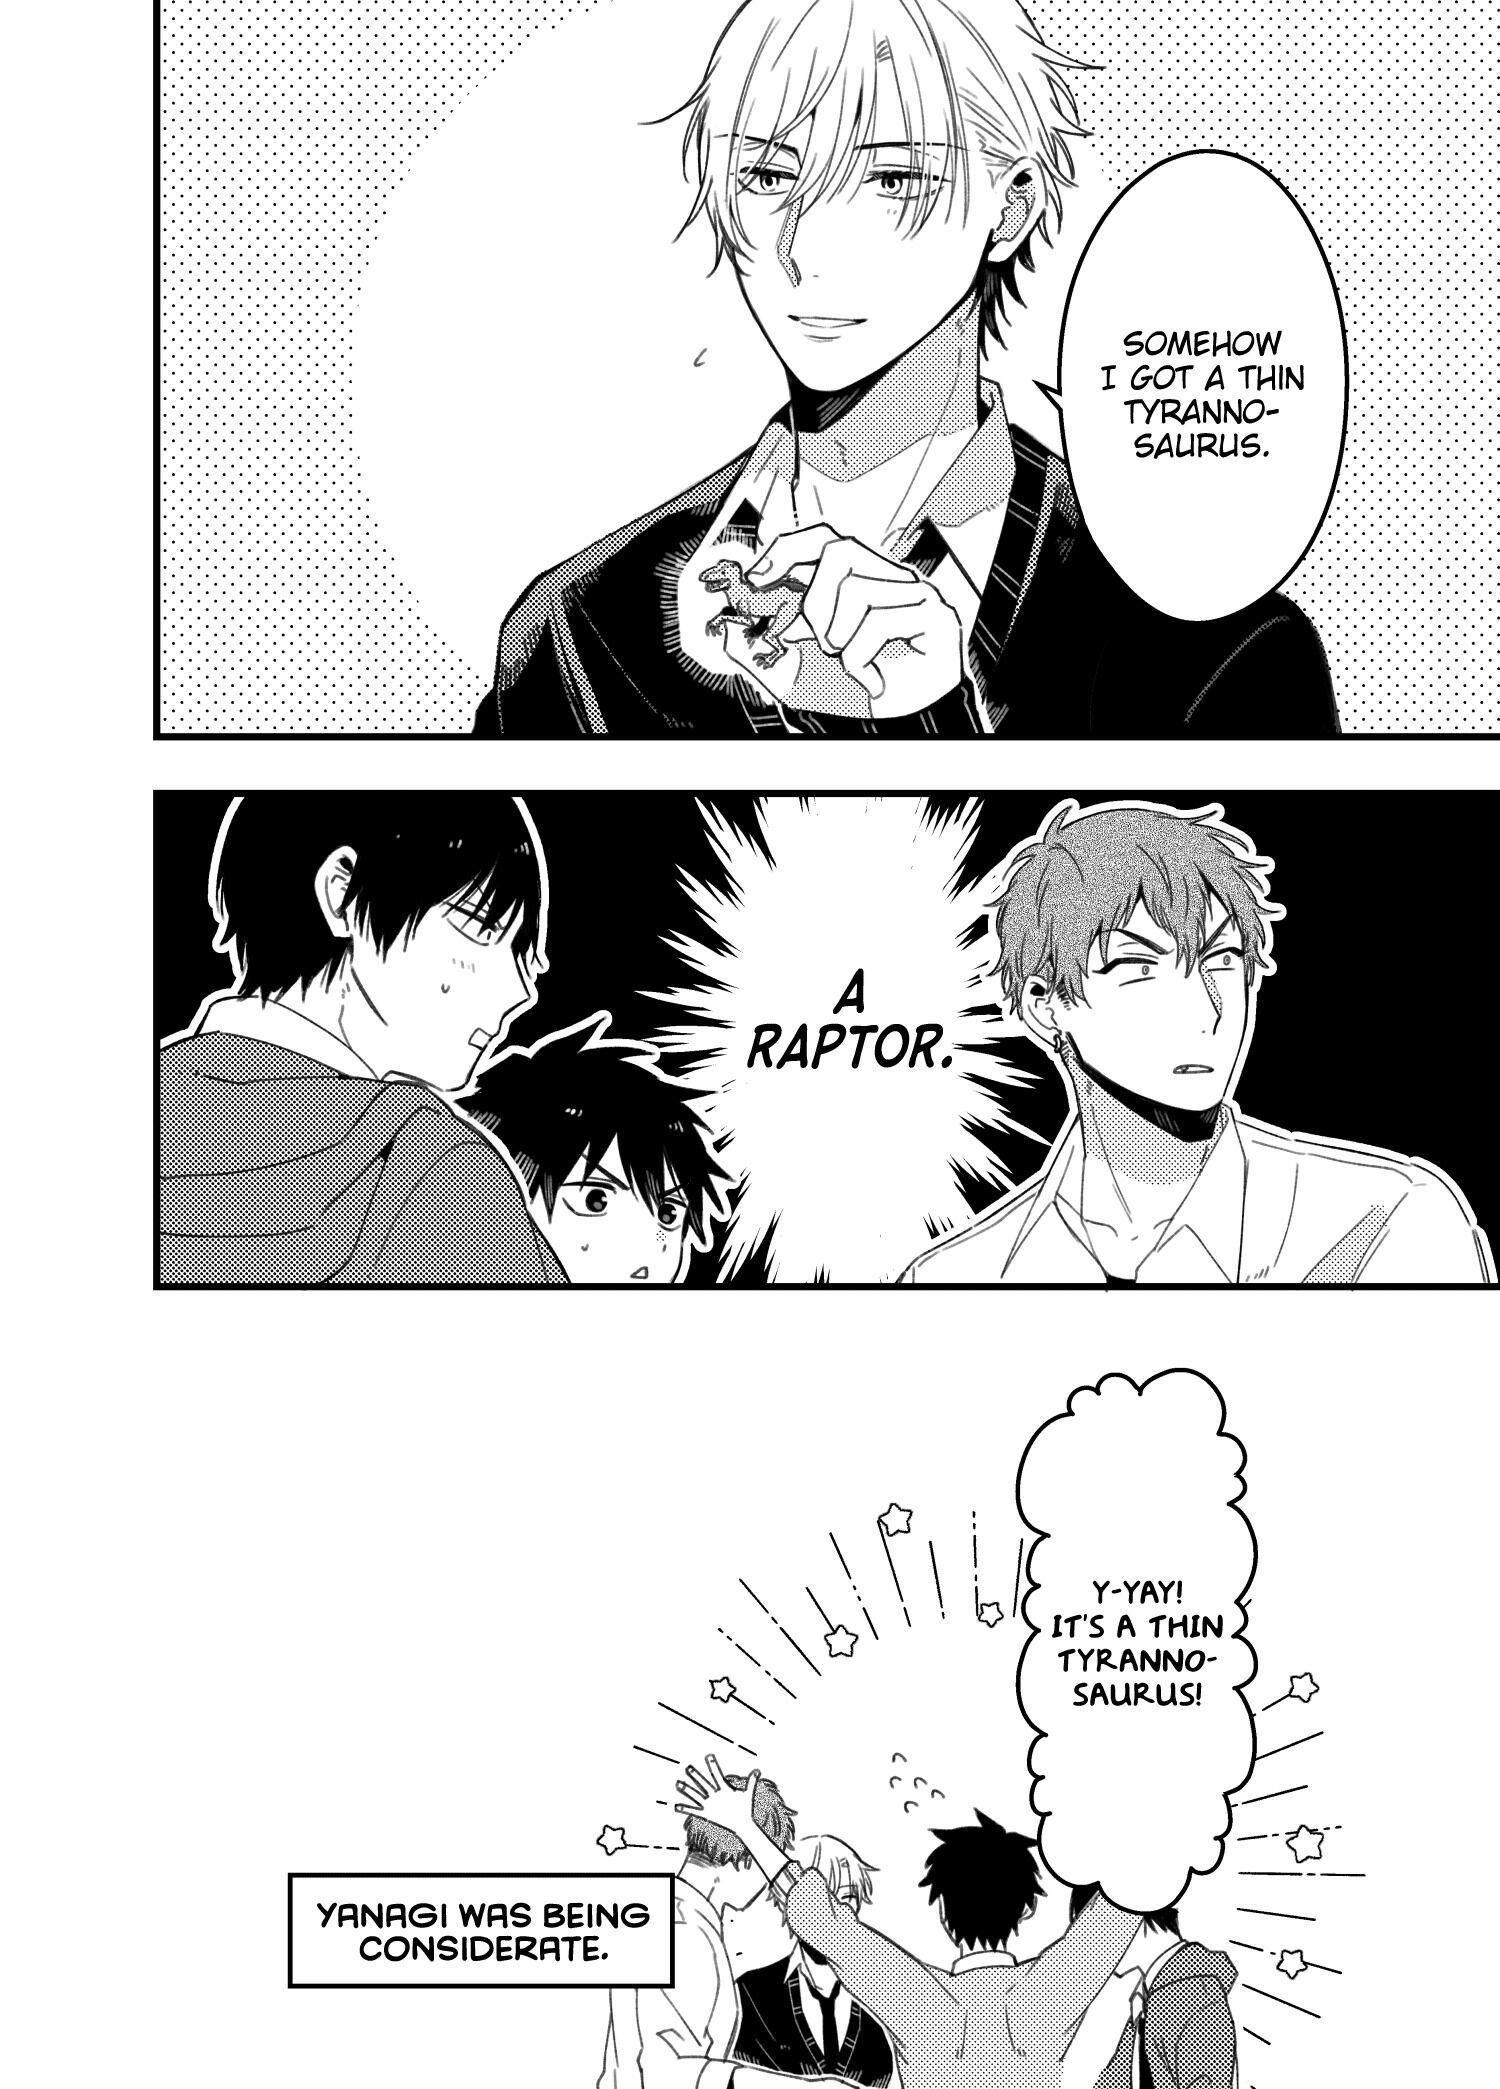 A World Where Everything Definitely Becomes Bl Vs. The Man Who Definitely Doesn't Want To Be In A Bl Volume 2 Chapter 35.6 : Twitter Comics page 19 - Mangakakalots.com